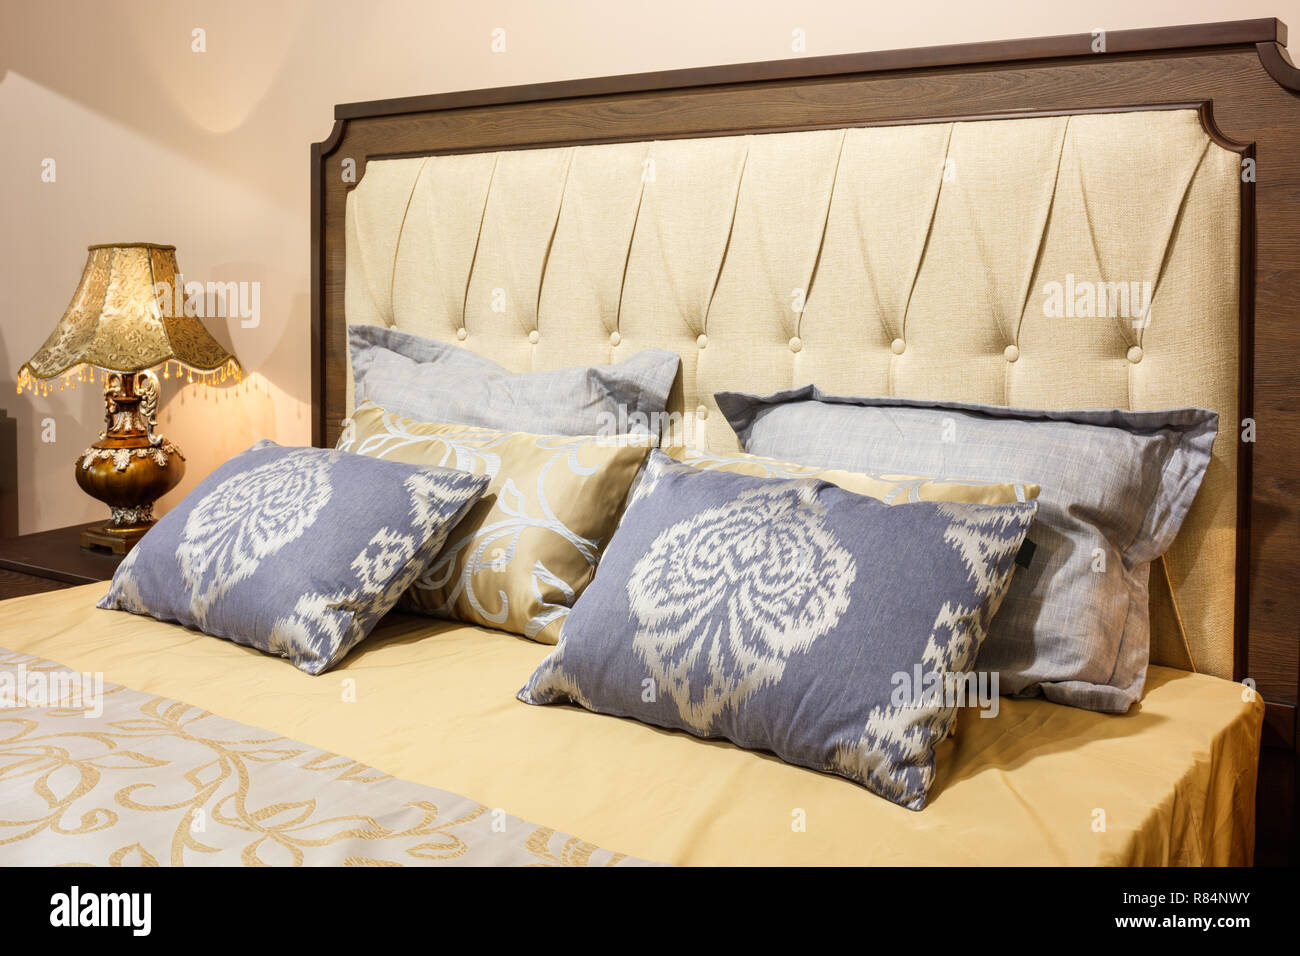 luxury modern style bedroom in yellow and blue tones, Interior of a ...